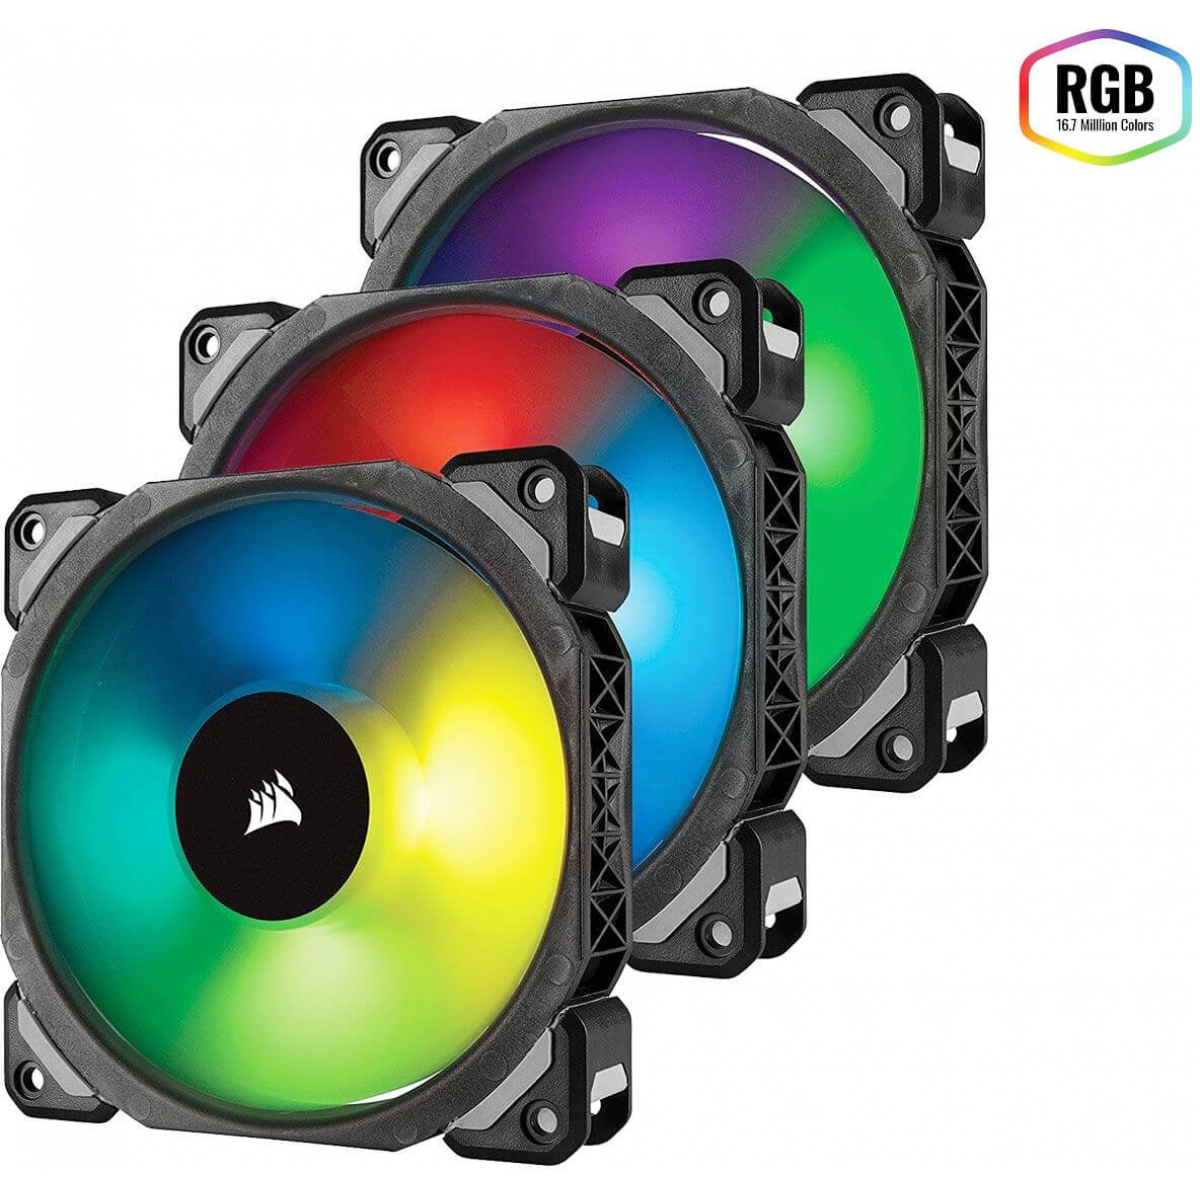 Kit Fan com 3 Unidades Corsair ML120 PRO, RGB 120mm, CO-9050076-WW